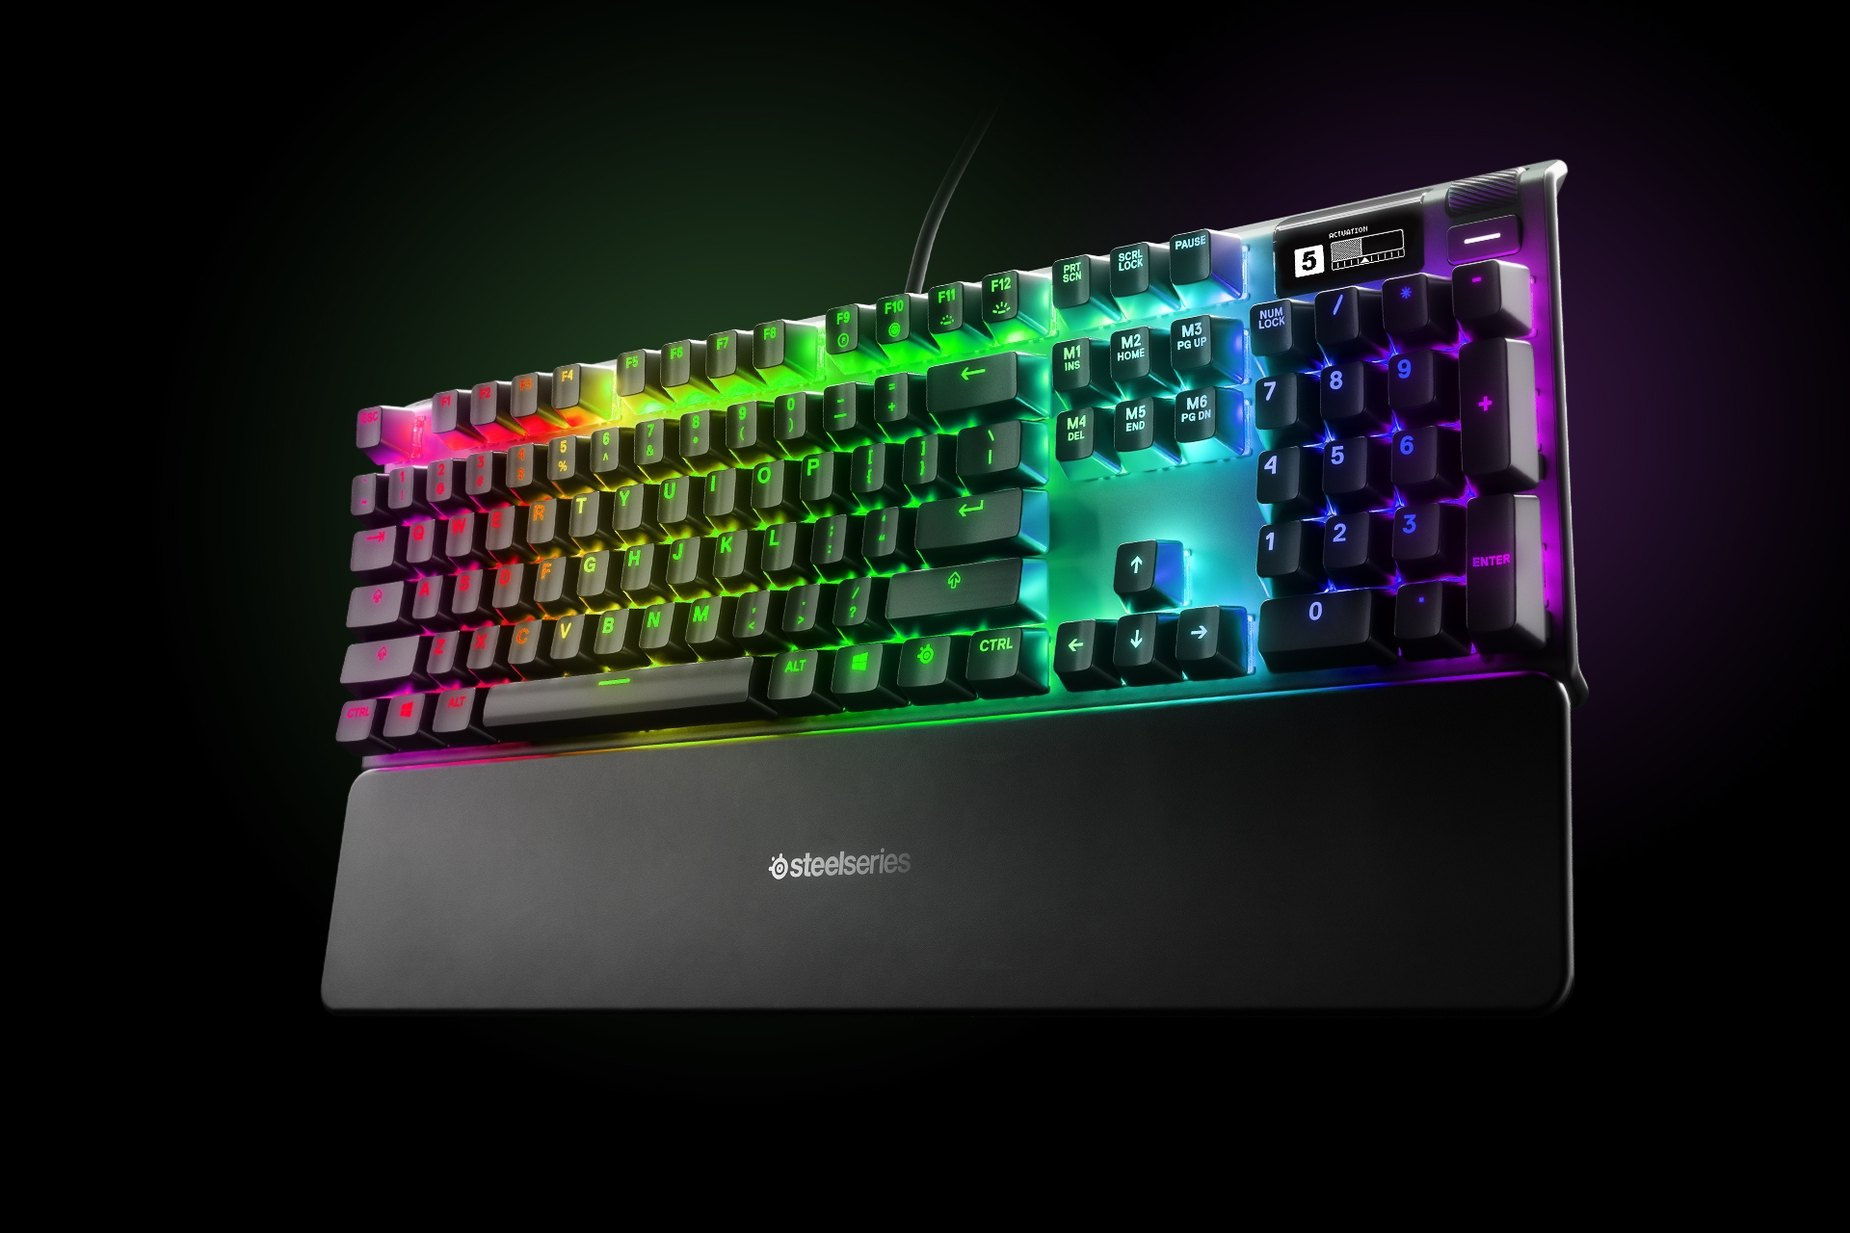 Немецкий - Apex Pro gaming keyboard with the illumination lit up on dark background, also shows the OLED screen and controls used to change settings, switch actuation, and adjust audio